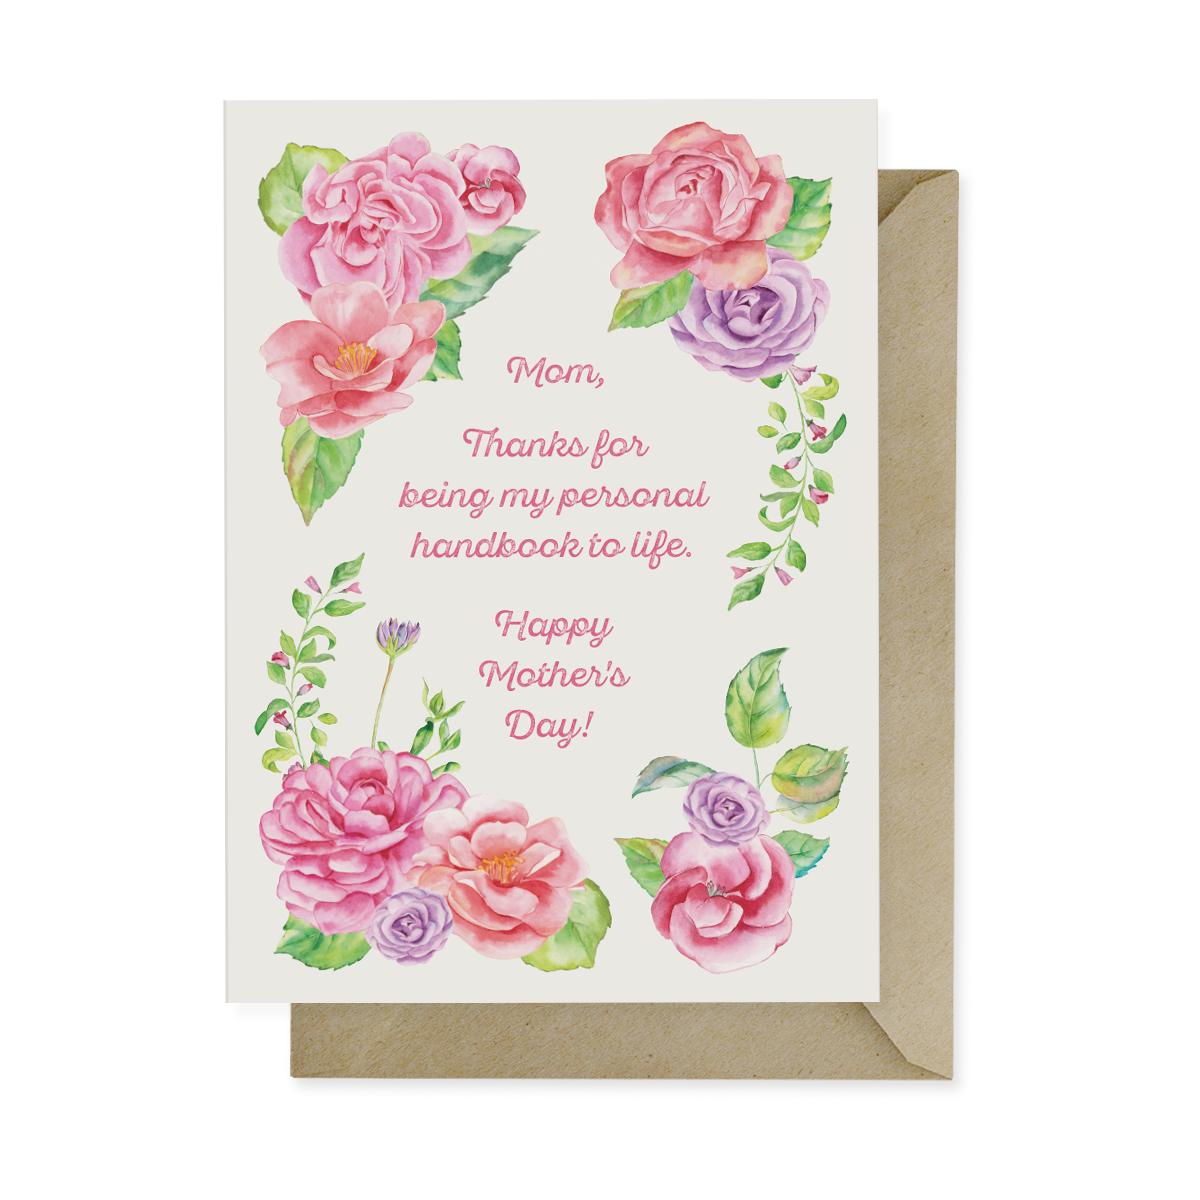 Free Printables: Six Witty Mother's Day Cards To Win Her